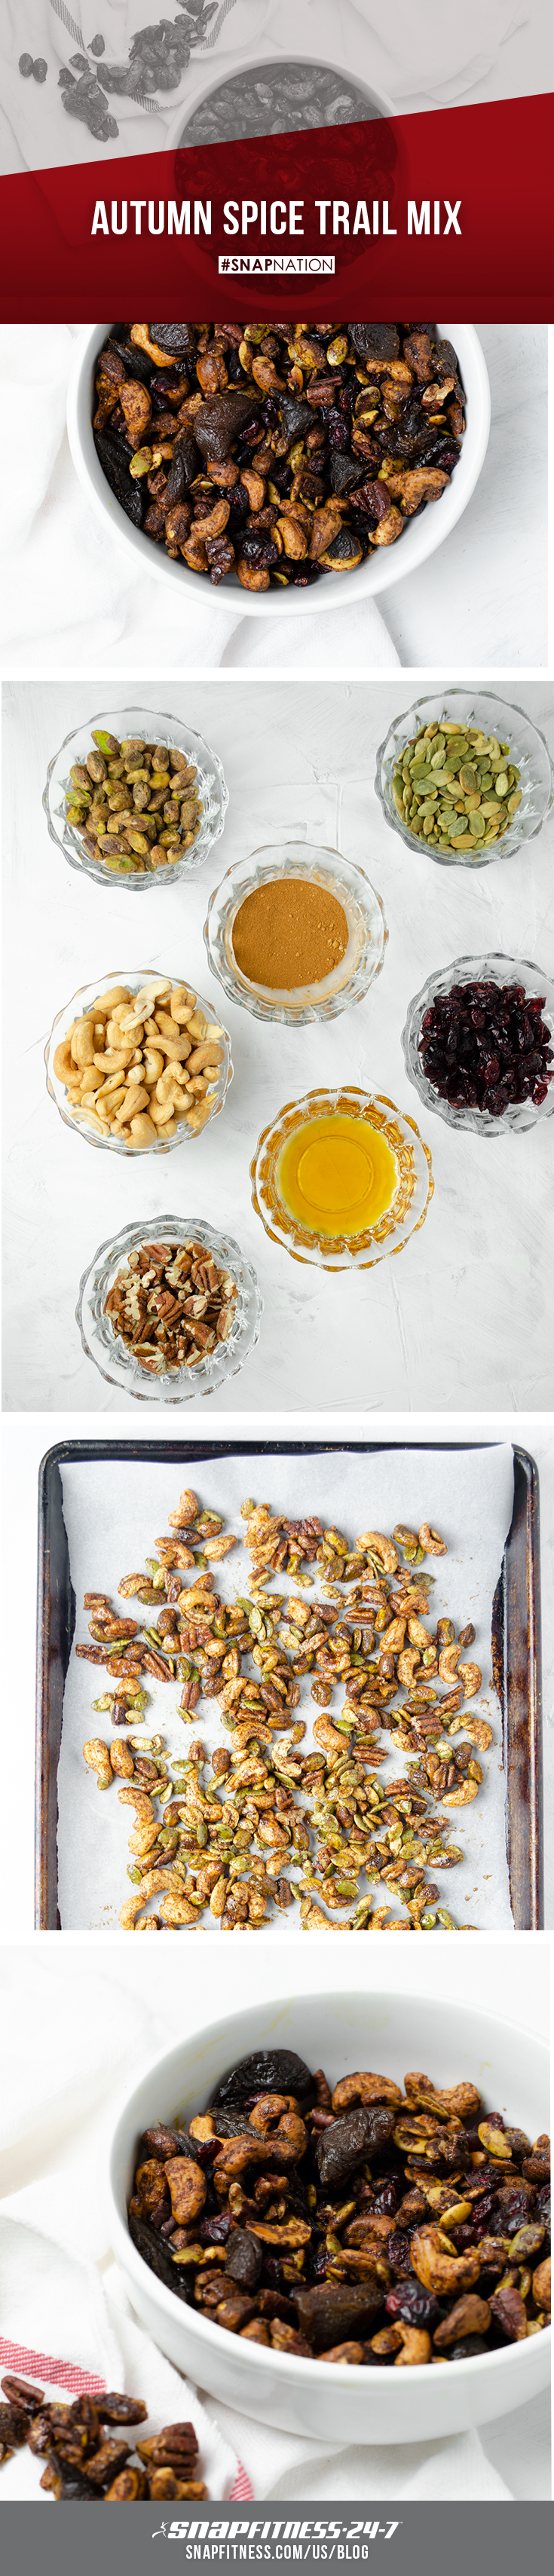 There is nothing quite as cozy as cuddling on the couch with a warm cup of cider on a fall evening. Take your cozy night to the next level with this Autumn Spice Trail Mix filled with your favorite fall flavors. Visit our blog for the recipe.